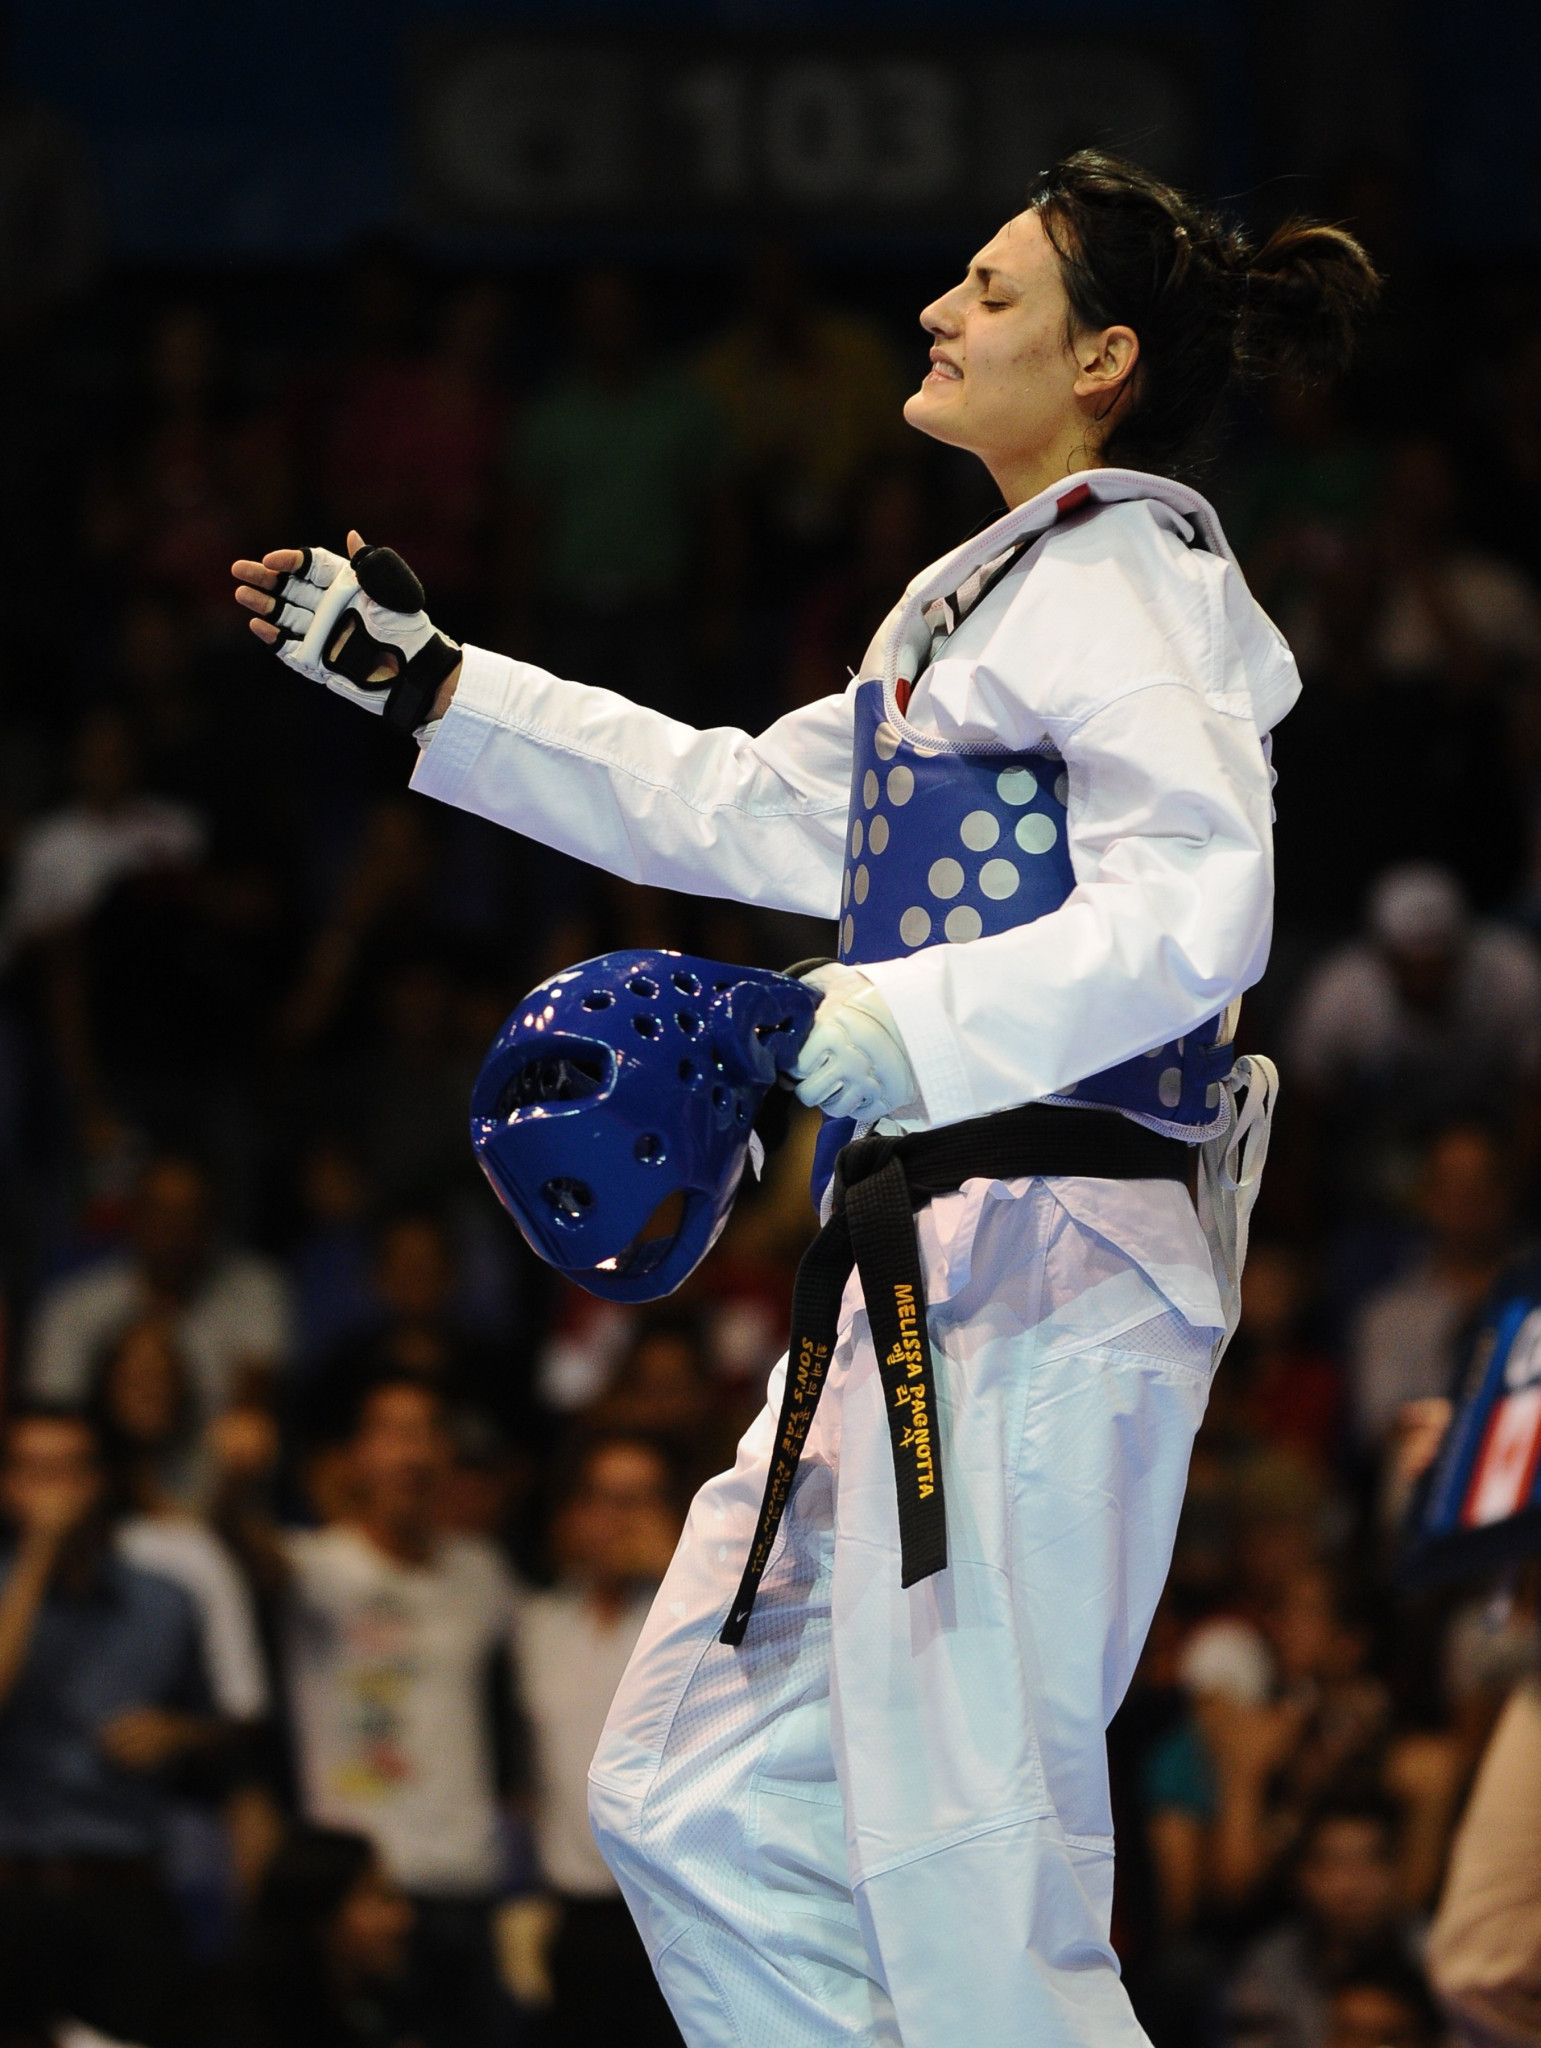 Top taekwondo competitors from around the world will descend on Richmond ©Getty Images